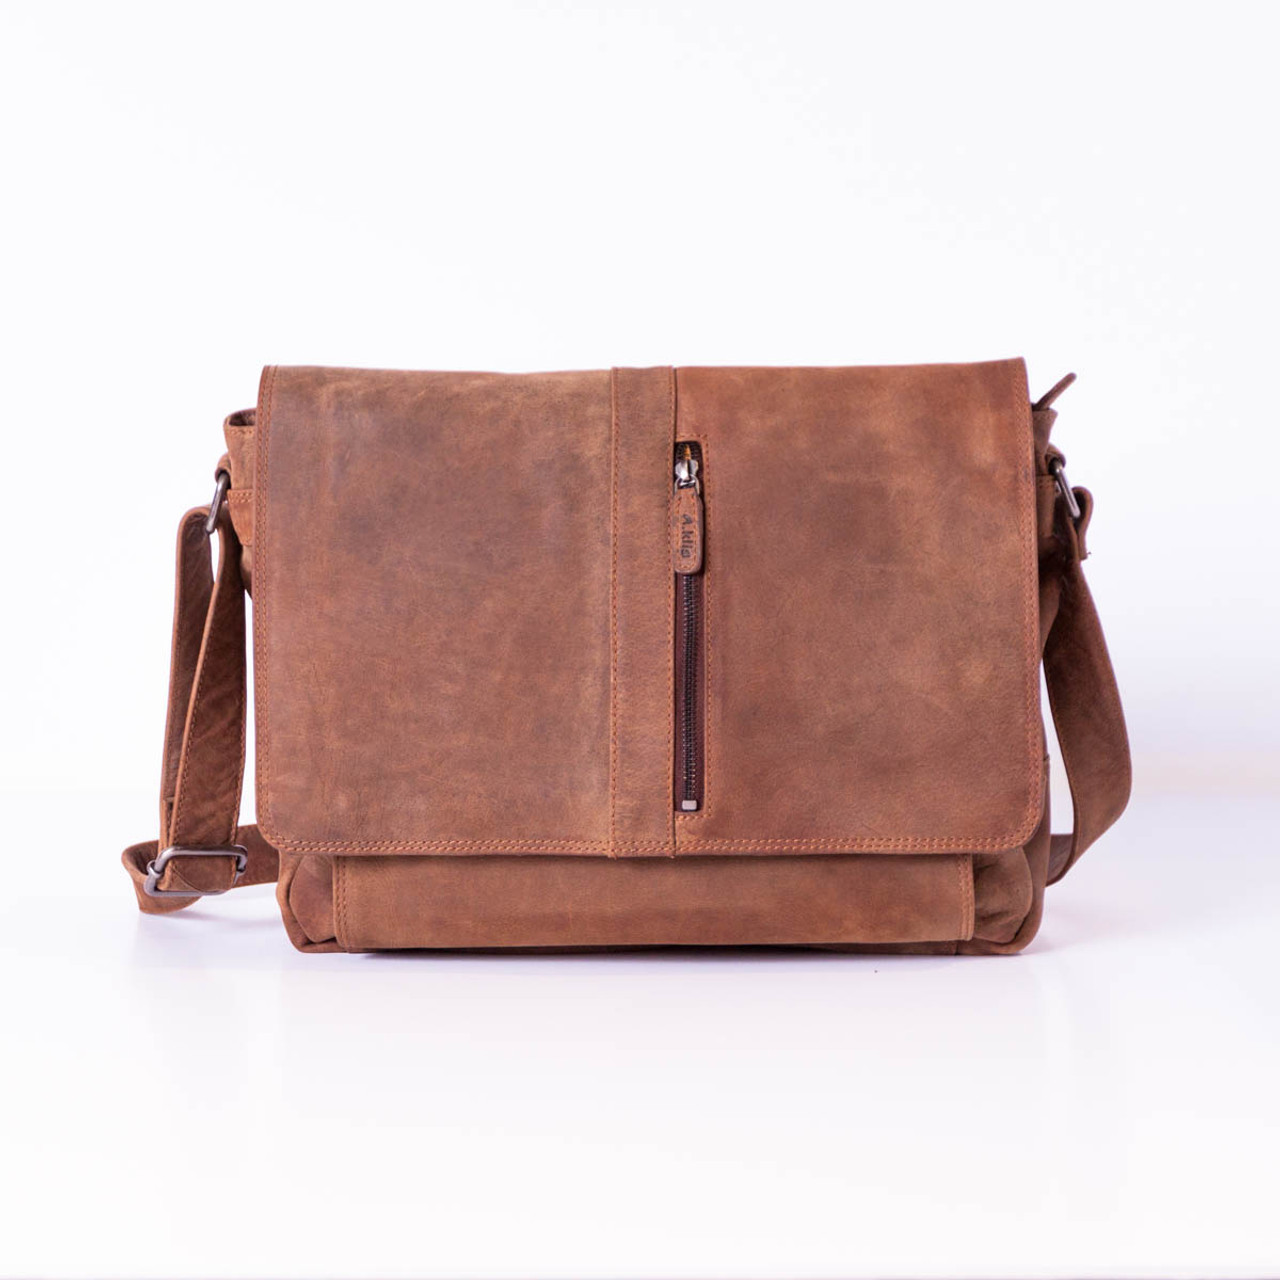 MESSENGER BAG 2751